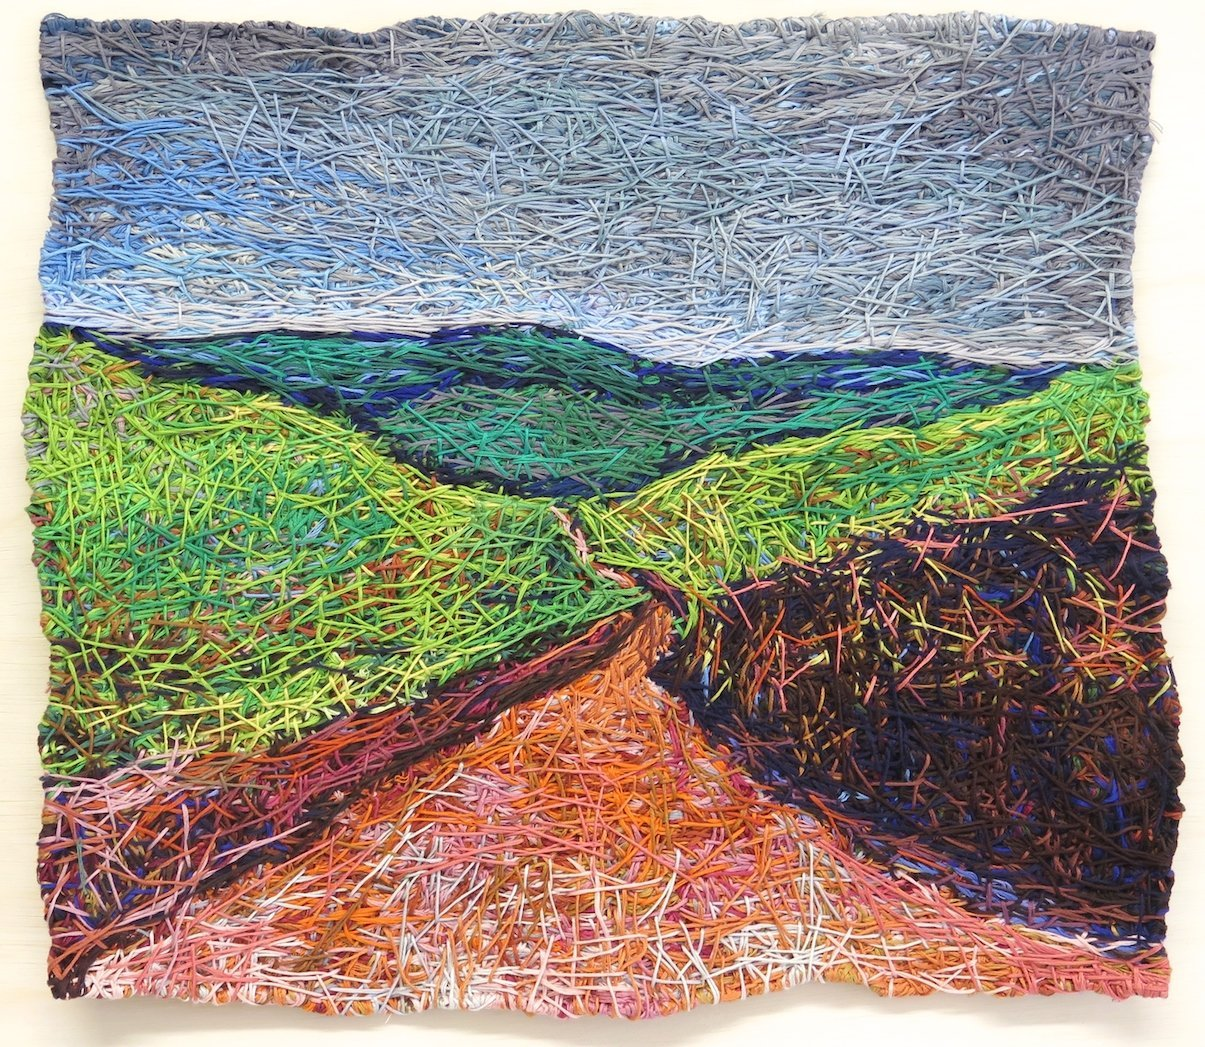 A Estrada (The Road)